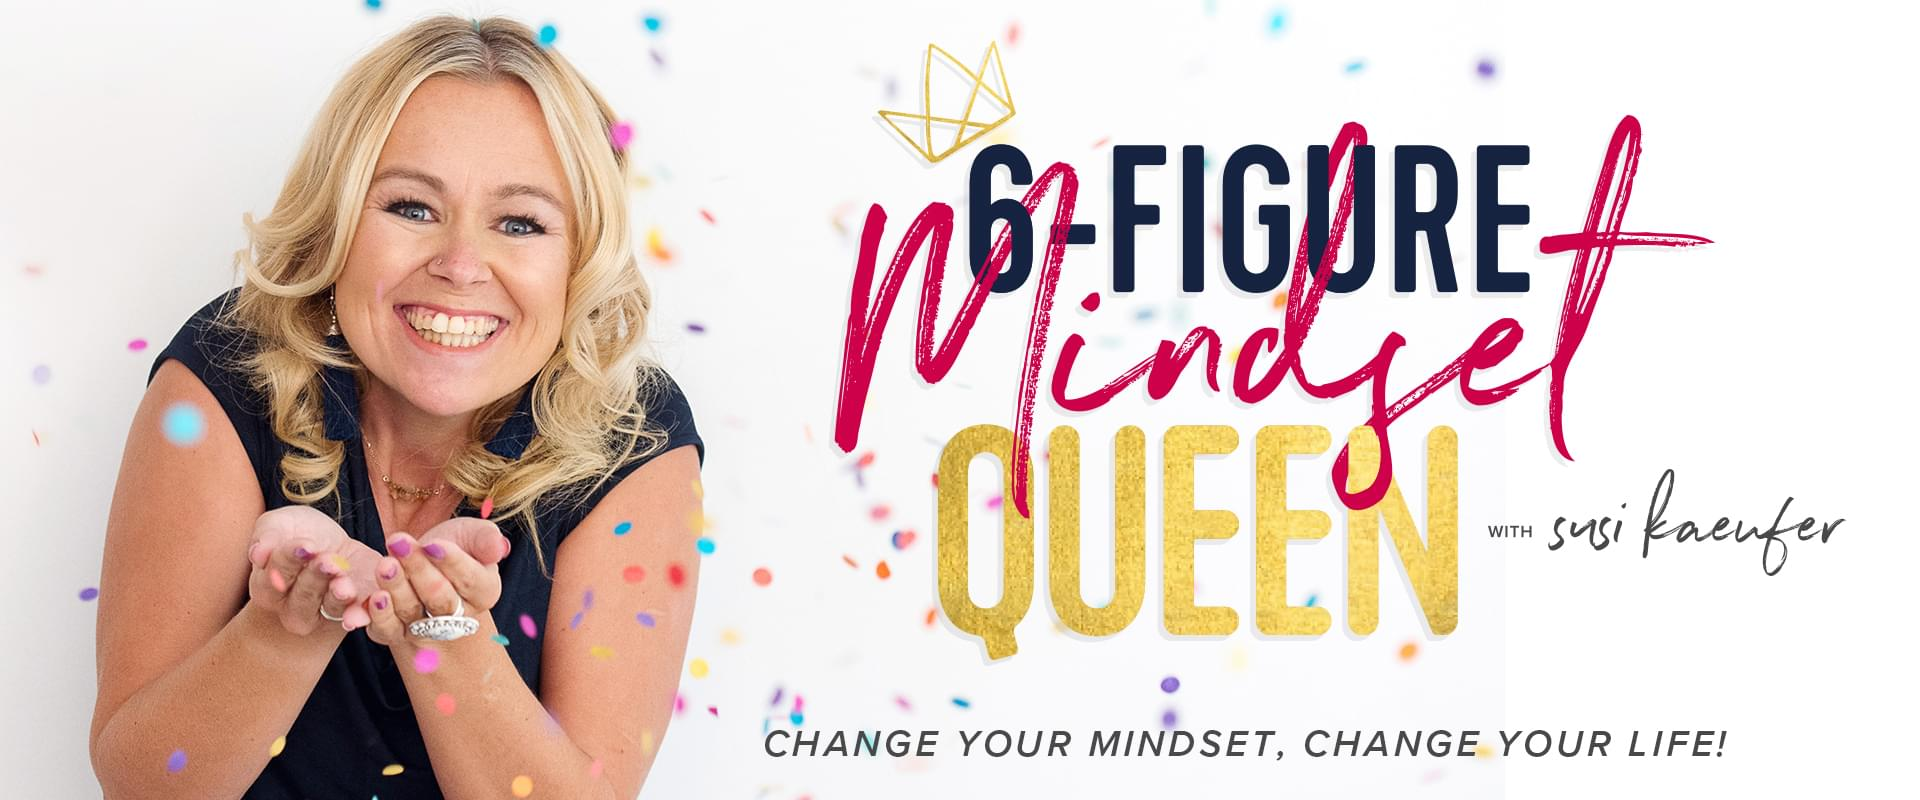 Wait List for 6-figure Mindset with Susi Kaeufer